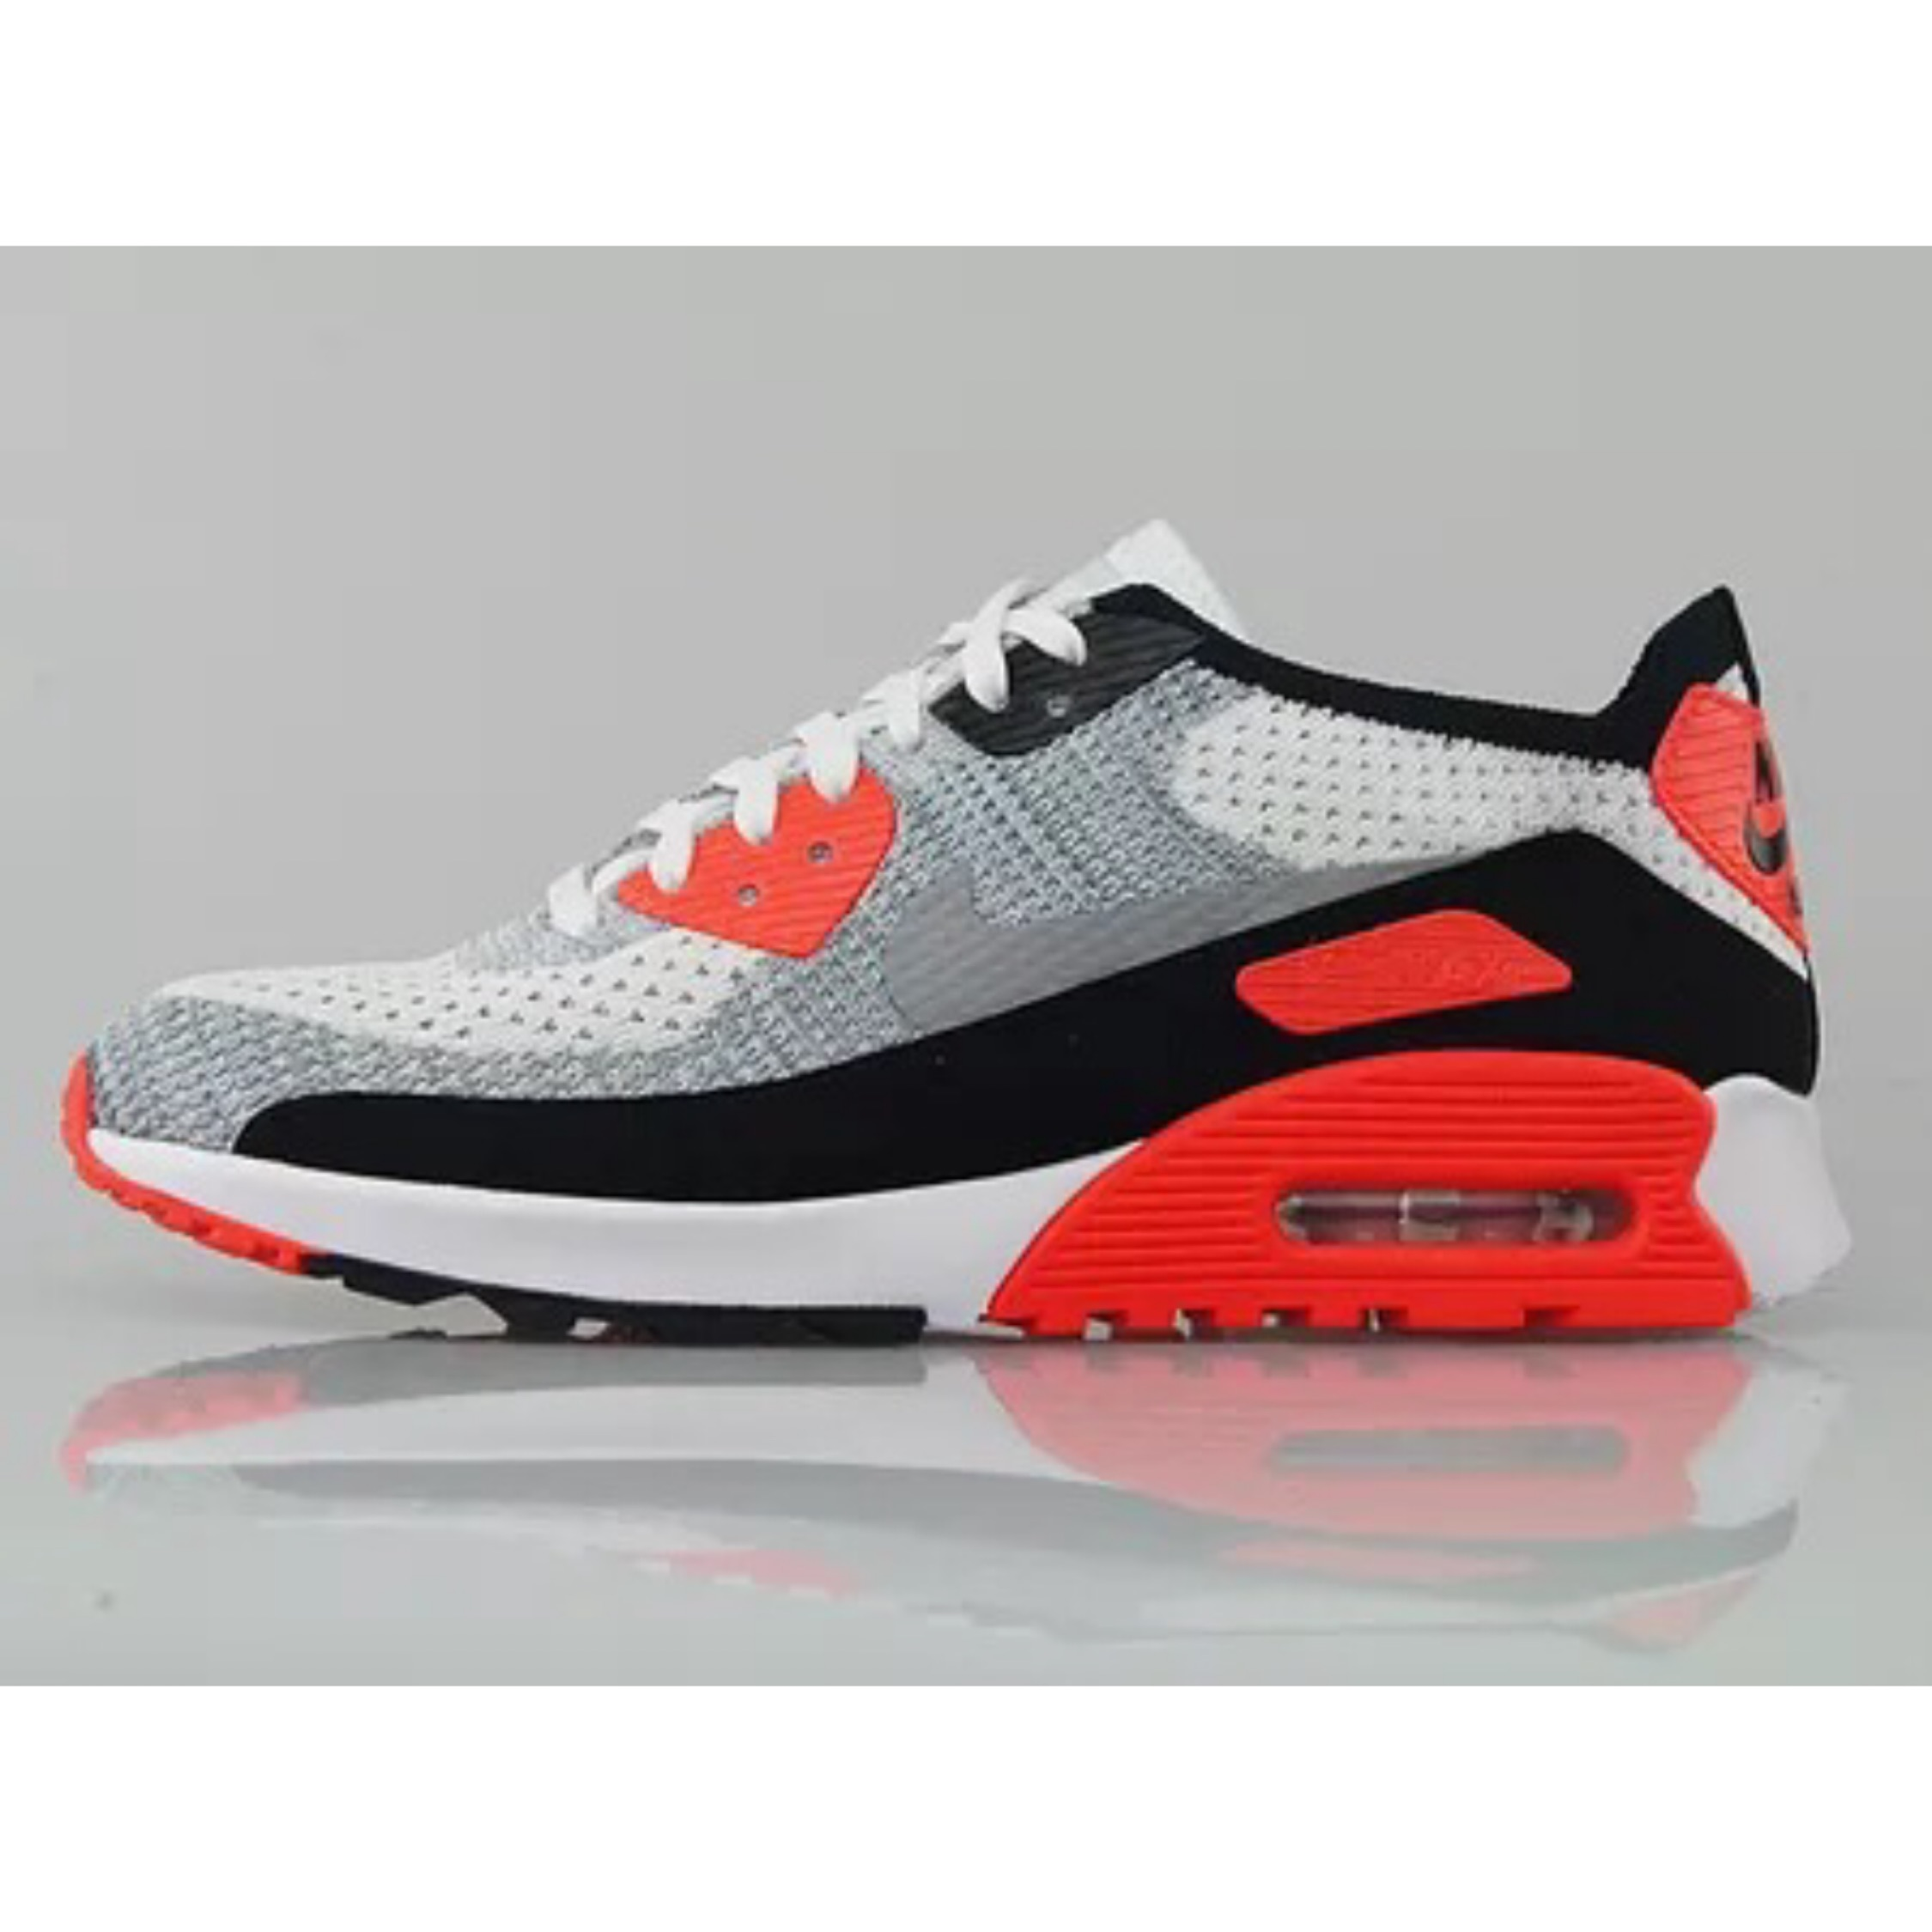 best website f52b4 224c6 Nike Air Max 90 Ultra Flyknit